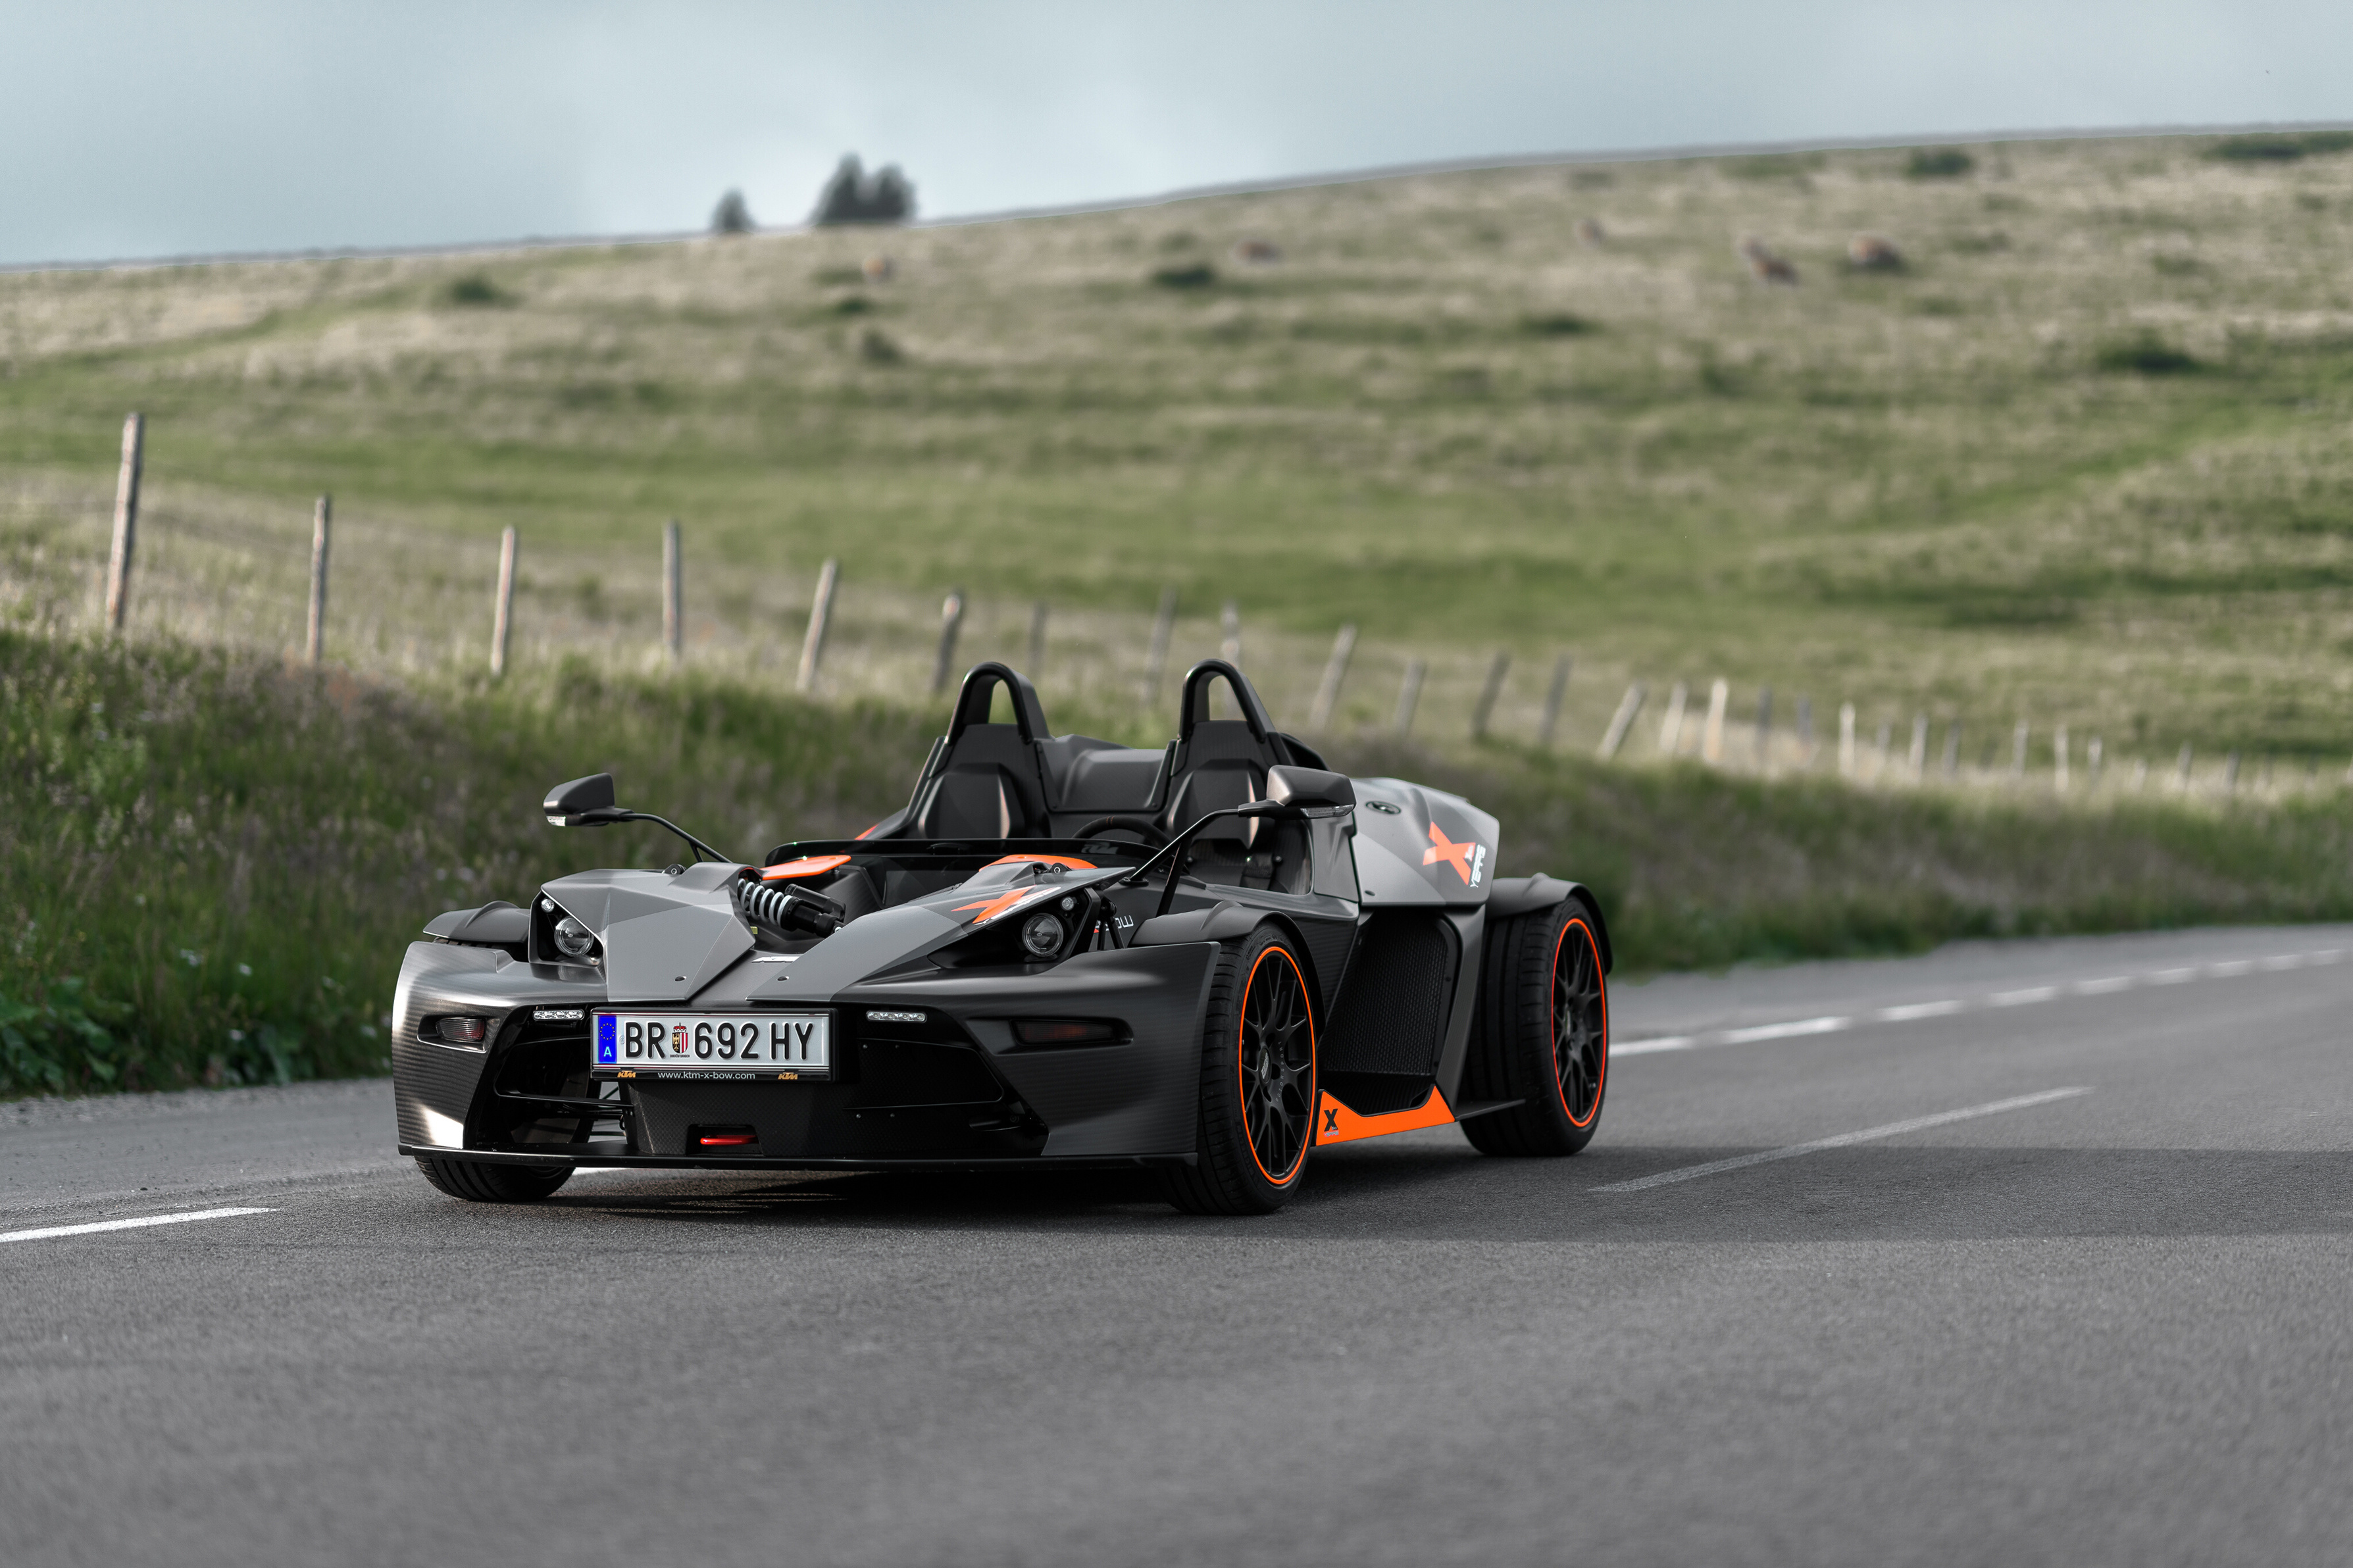 Images KTM Cars 2018-19 X-Bow 10 Years gray Cars 3576x2383 Grey auto automobile